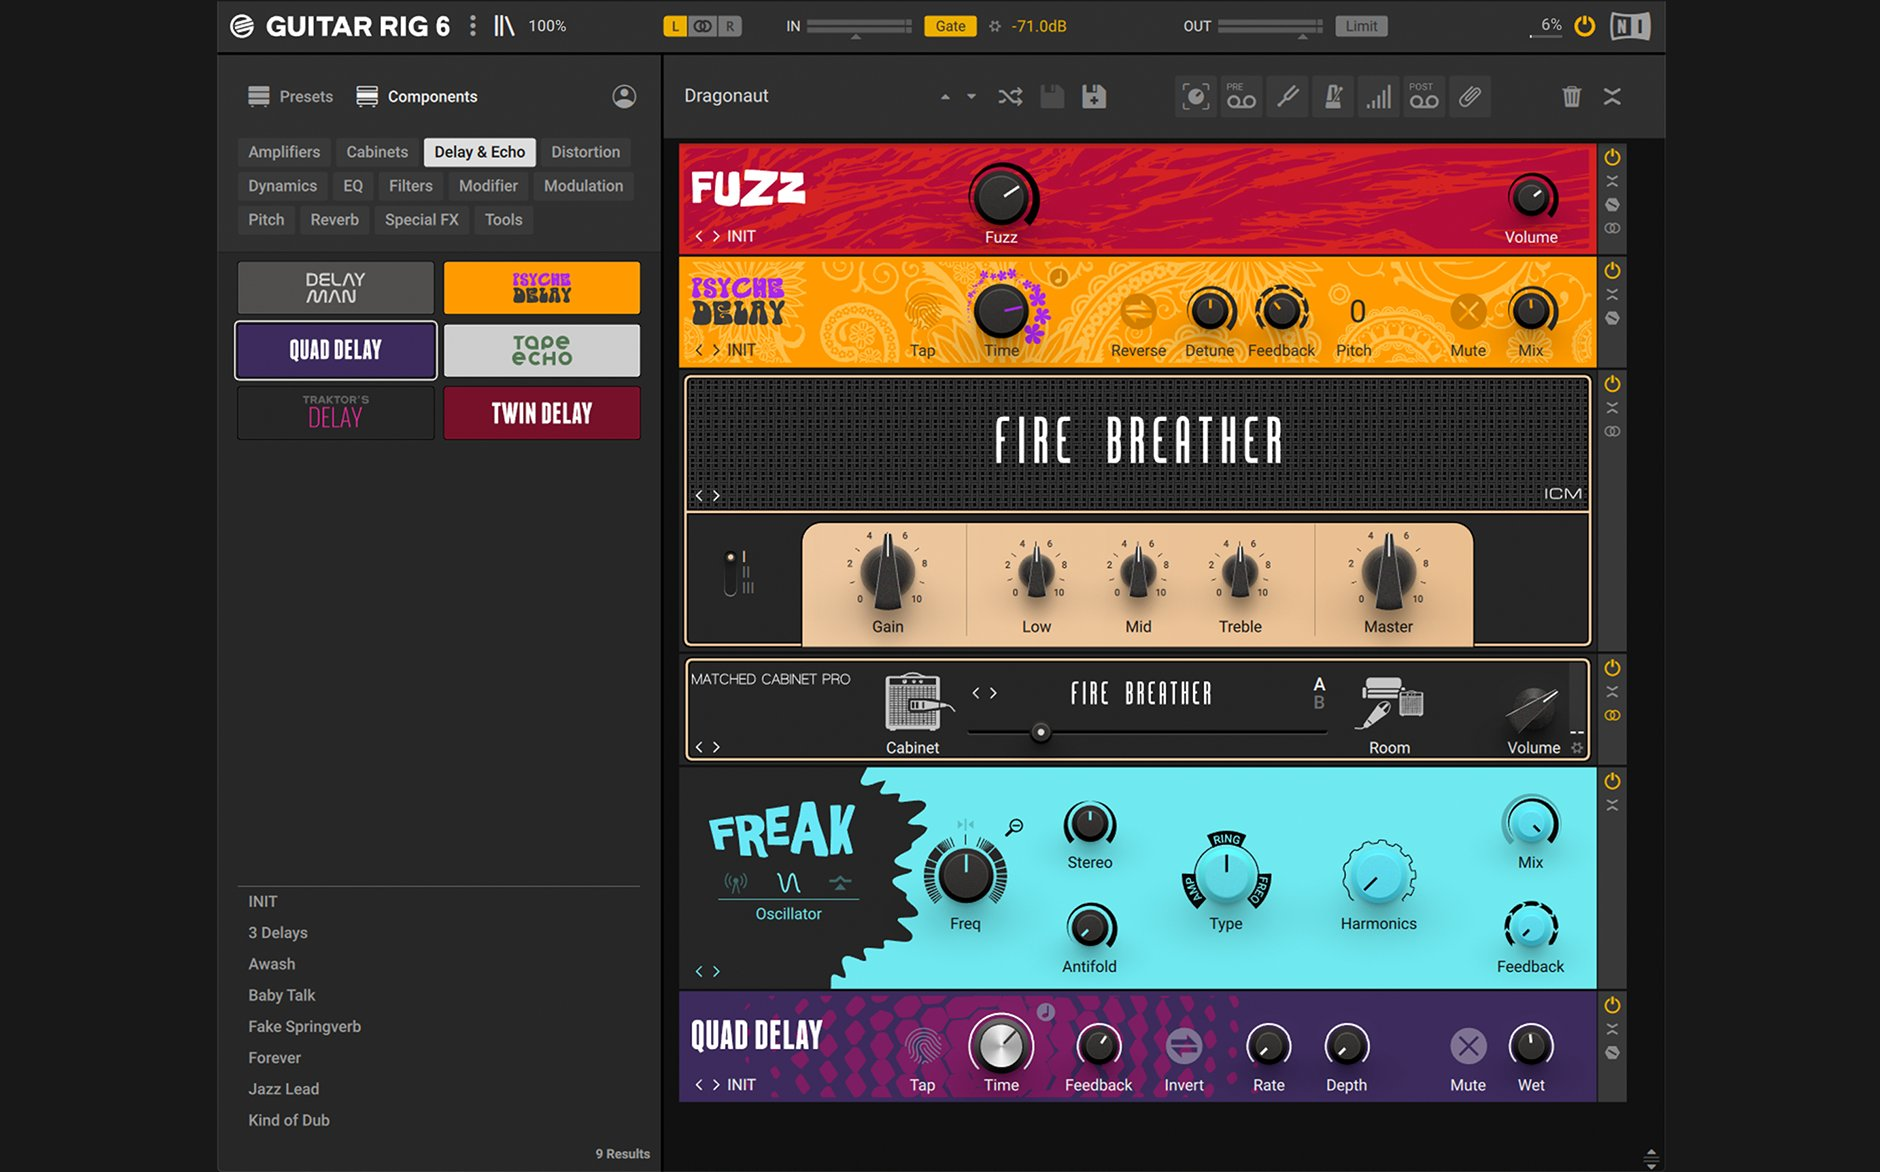 img-ce-gallery-guitar-rig-6-product-page-02-gallery-01-overview-v2_06-9eefc285ab1d4a3dca9af7051fd76d23-d@2x